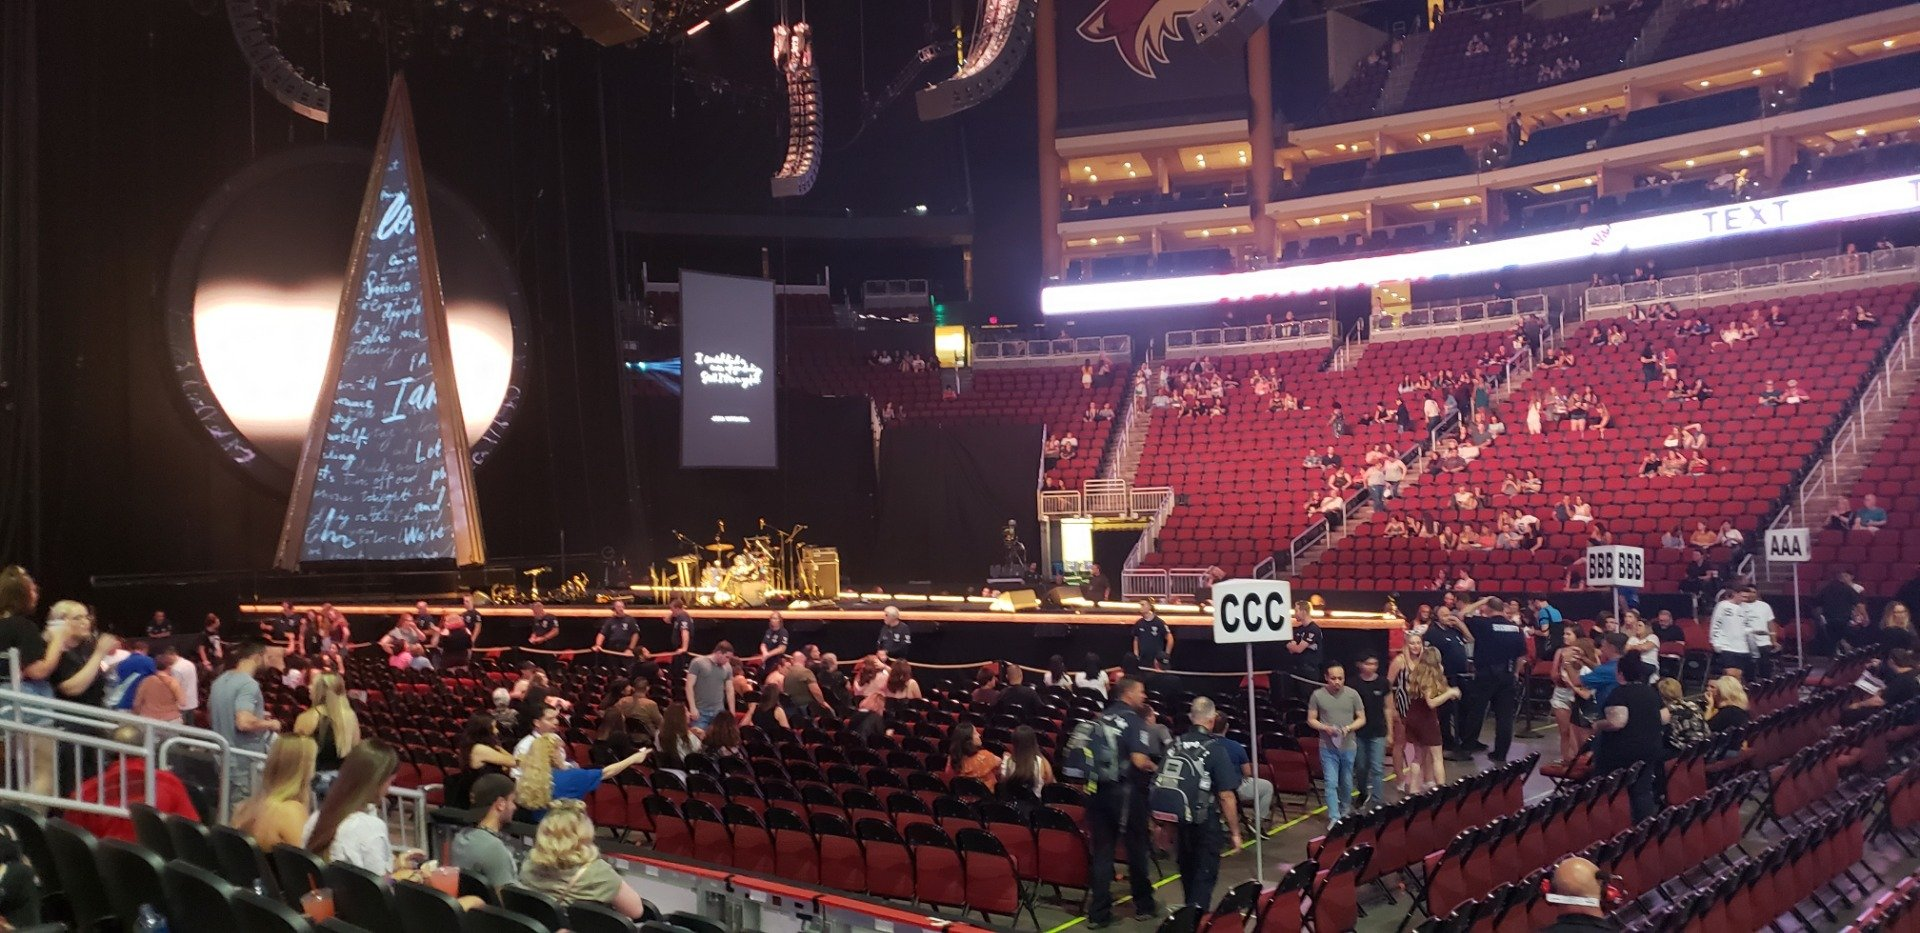 Gila River Arena Section 101 Row F Seat 2